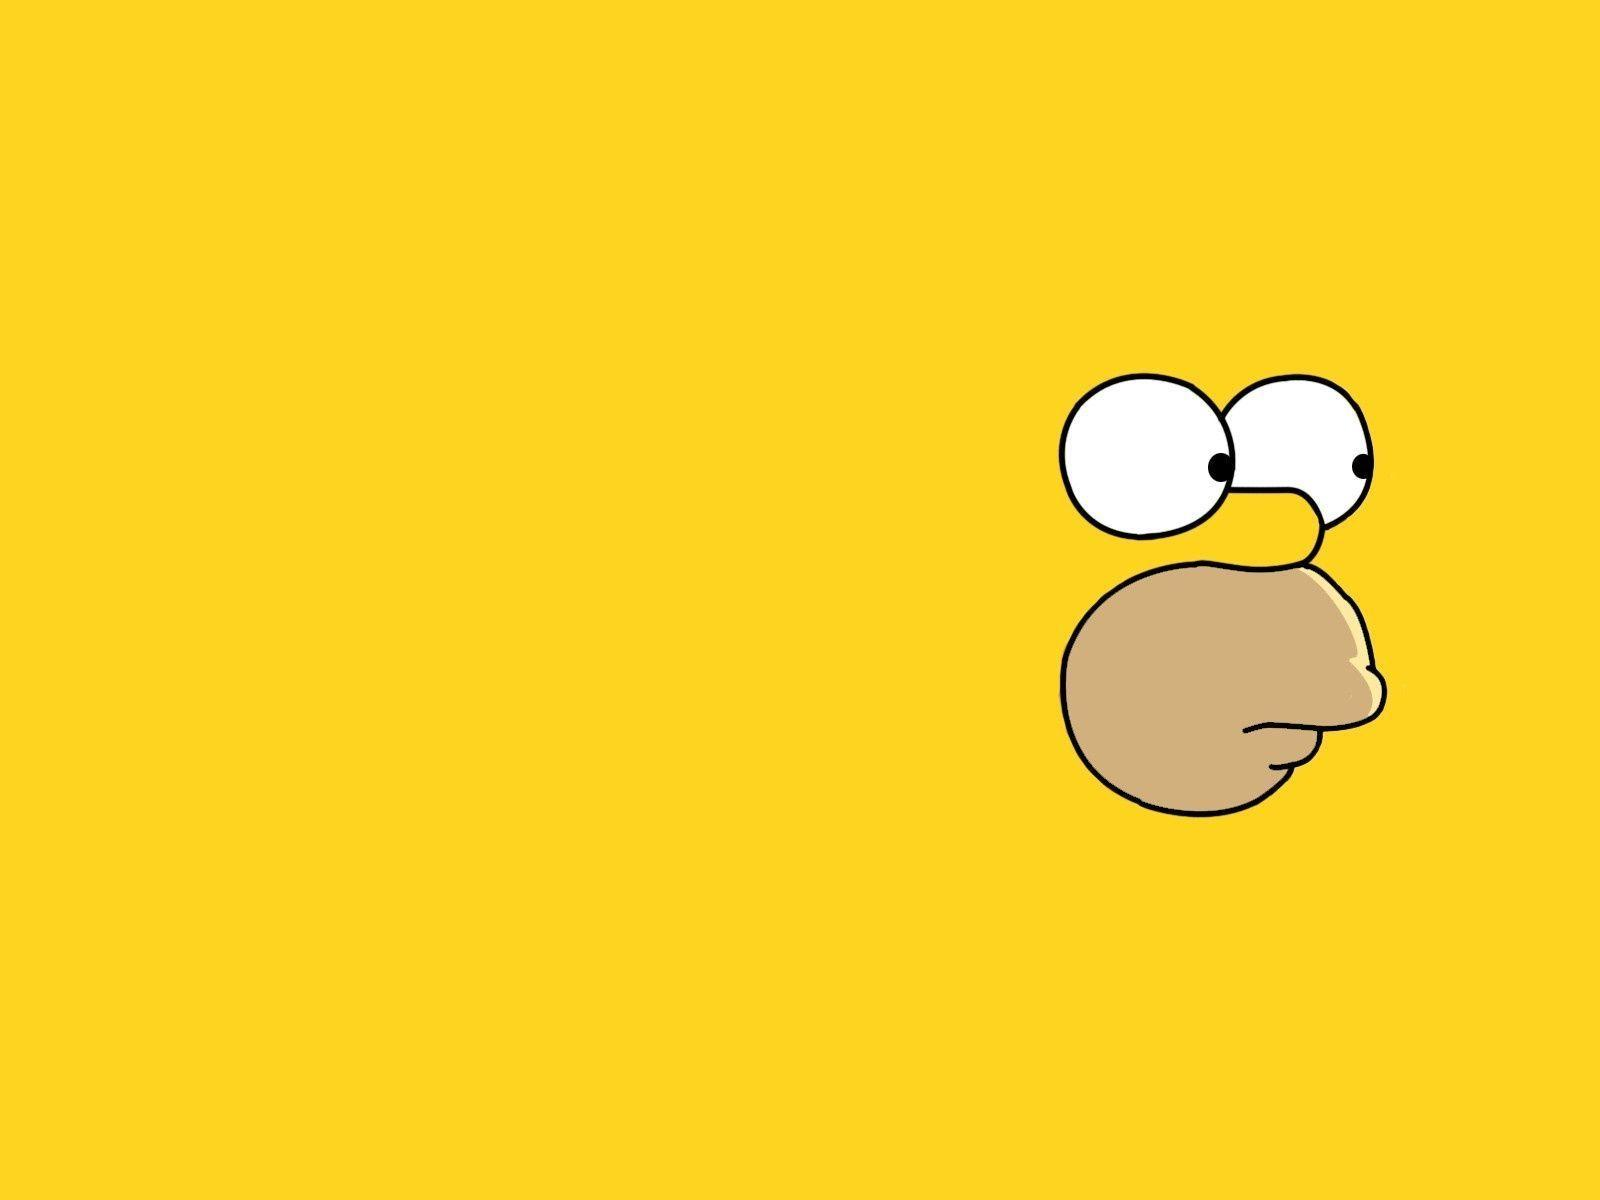 The Simpsons Wallpapers 1920 X 1080: Wallpapers For Gt Simpsons